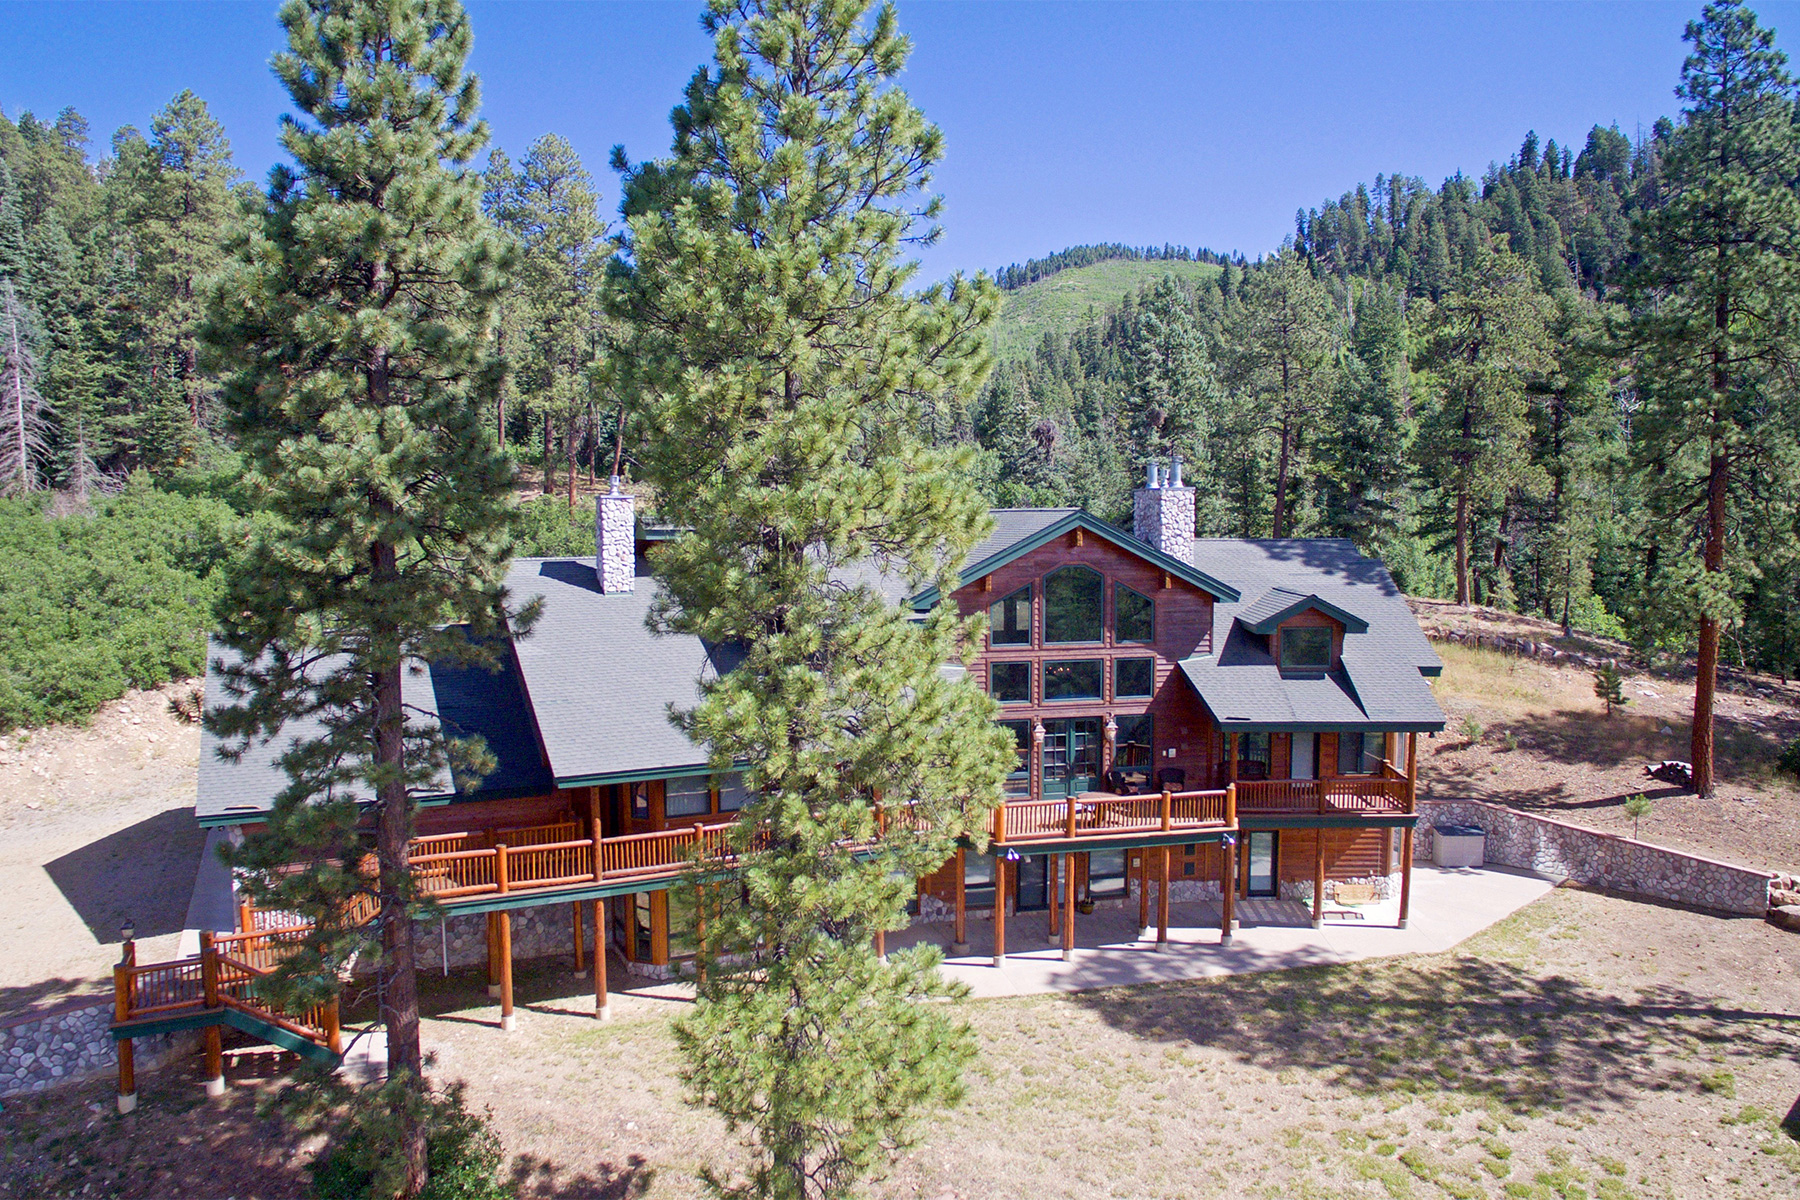 Single Family Home for Sale at TC Ranch 780 Trew Creek Road Durango, Colorado 81301 United States